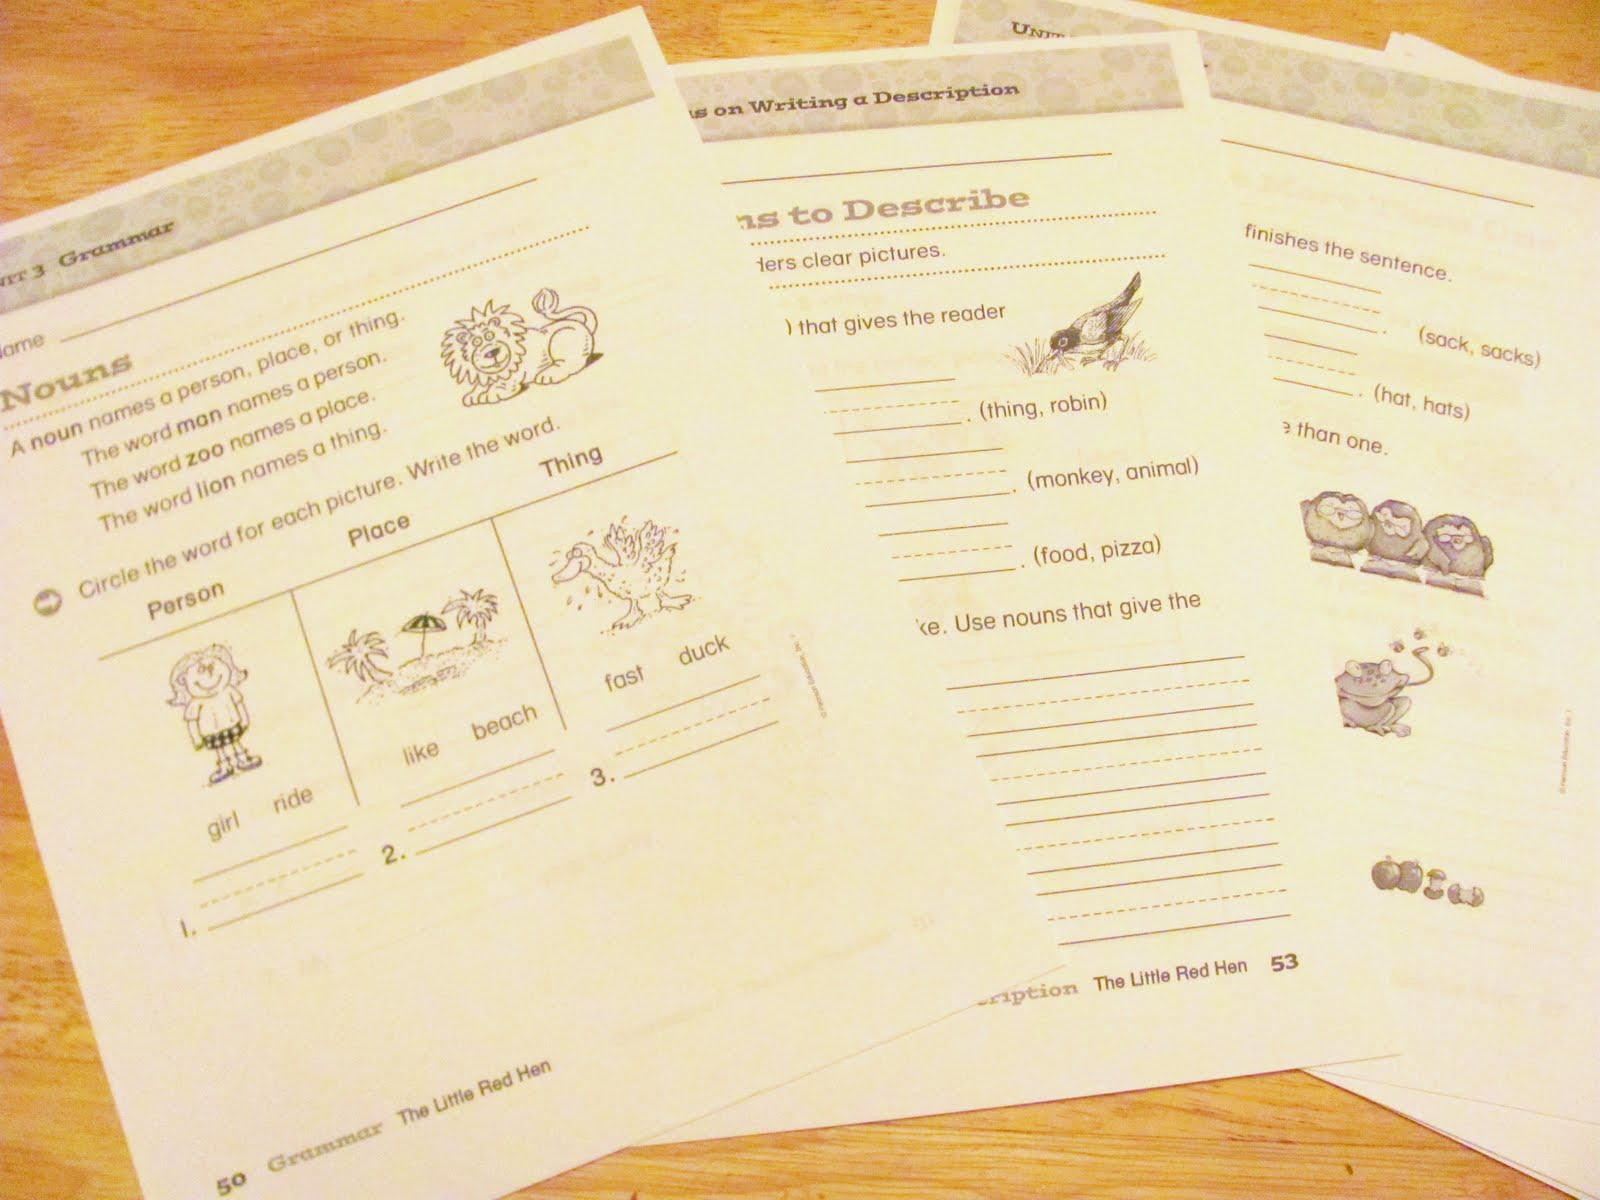 Worksheets Scott Foresman Worksheets my two happy homeschoolers free writing and grammar text for grades 1 to 6